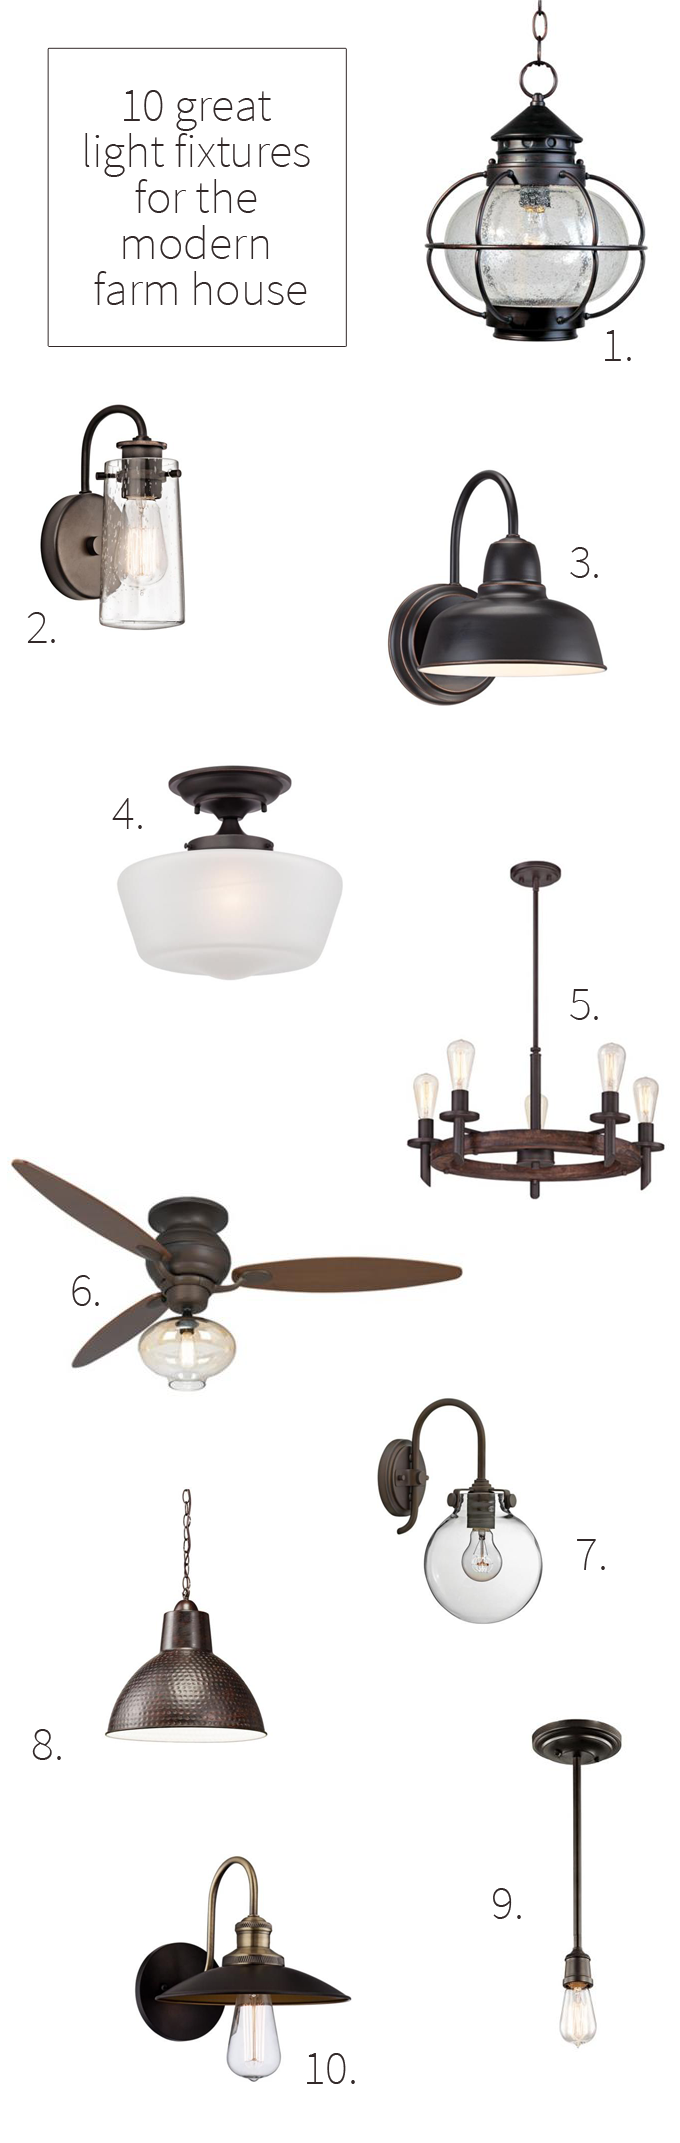 10 great farm house light fixtures just a few of the amazing light fixtures weve considered for the new house